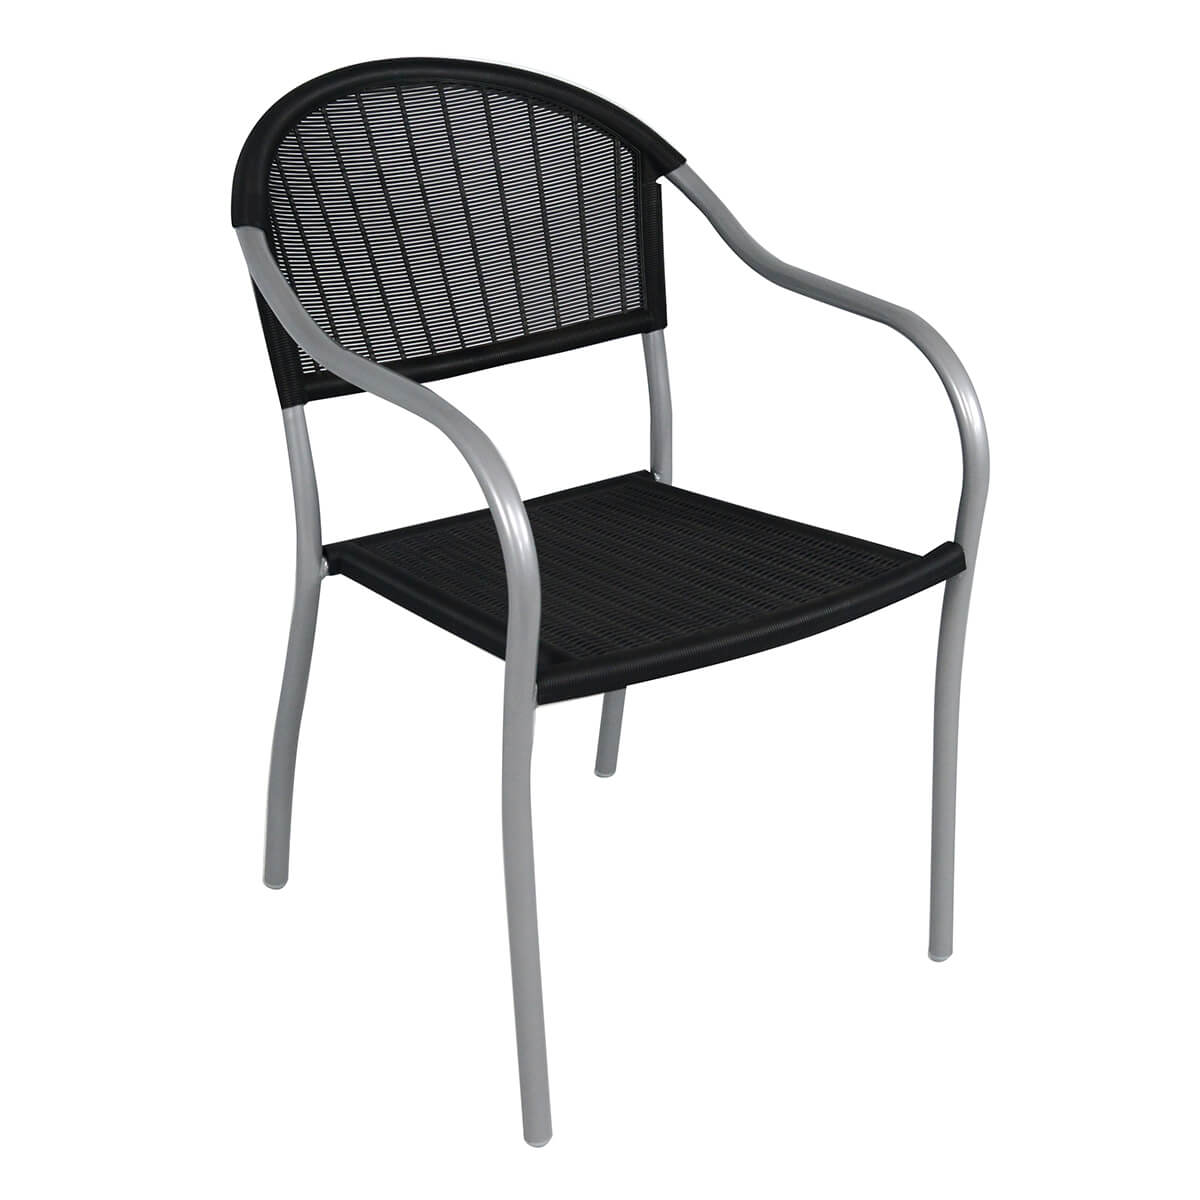 Patio Chair - Black and Silver